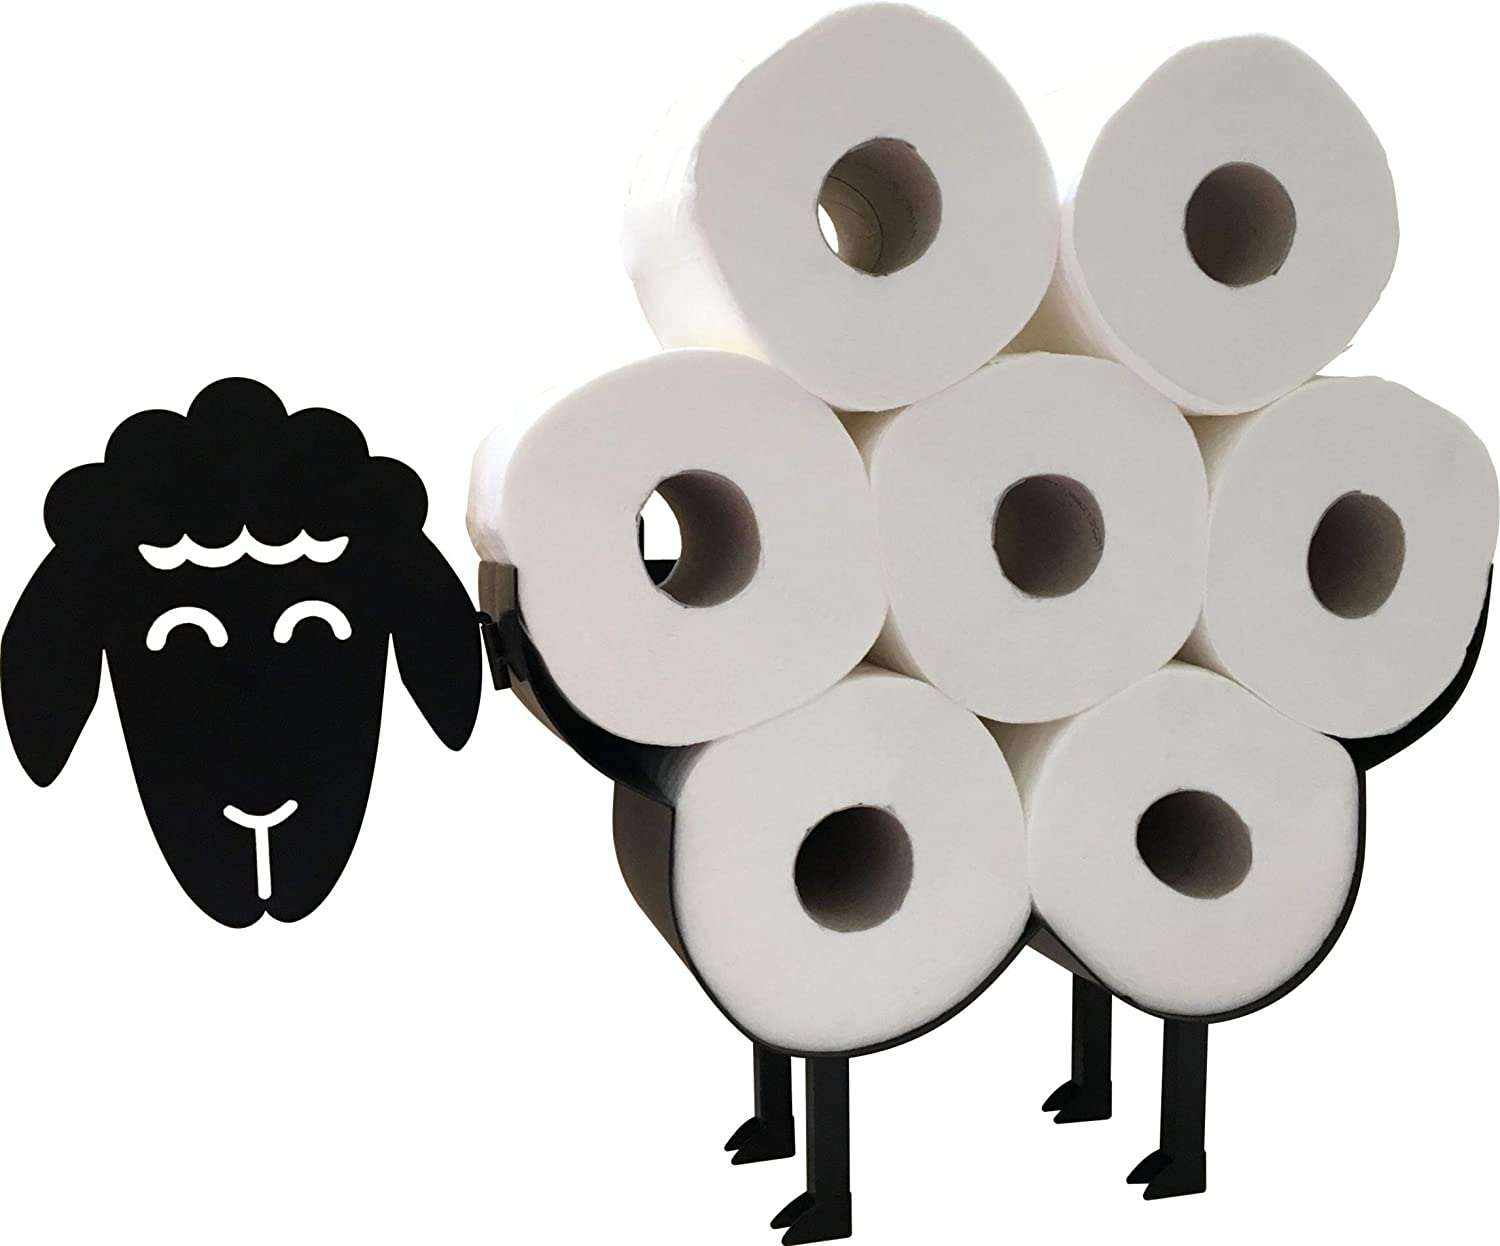 Cute Black Sheep Toilet Paper Roll Holder - Cool Novelty Free Standing or Wall Mounted Toilet Roll Tissue Paper Storage Stand & Holder | Bathroom Floor Decor Accessories | Best Gifts Idea - Neat Sheep